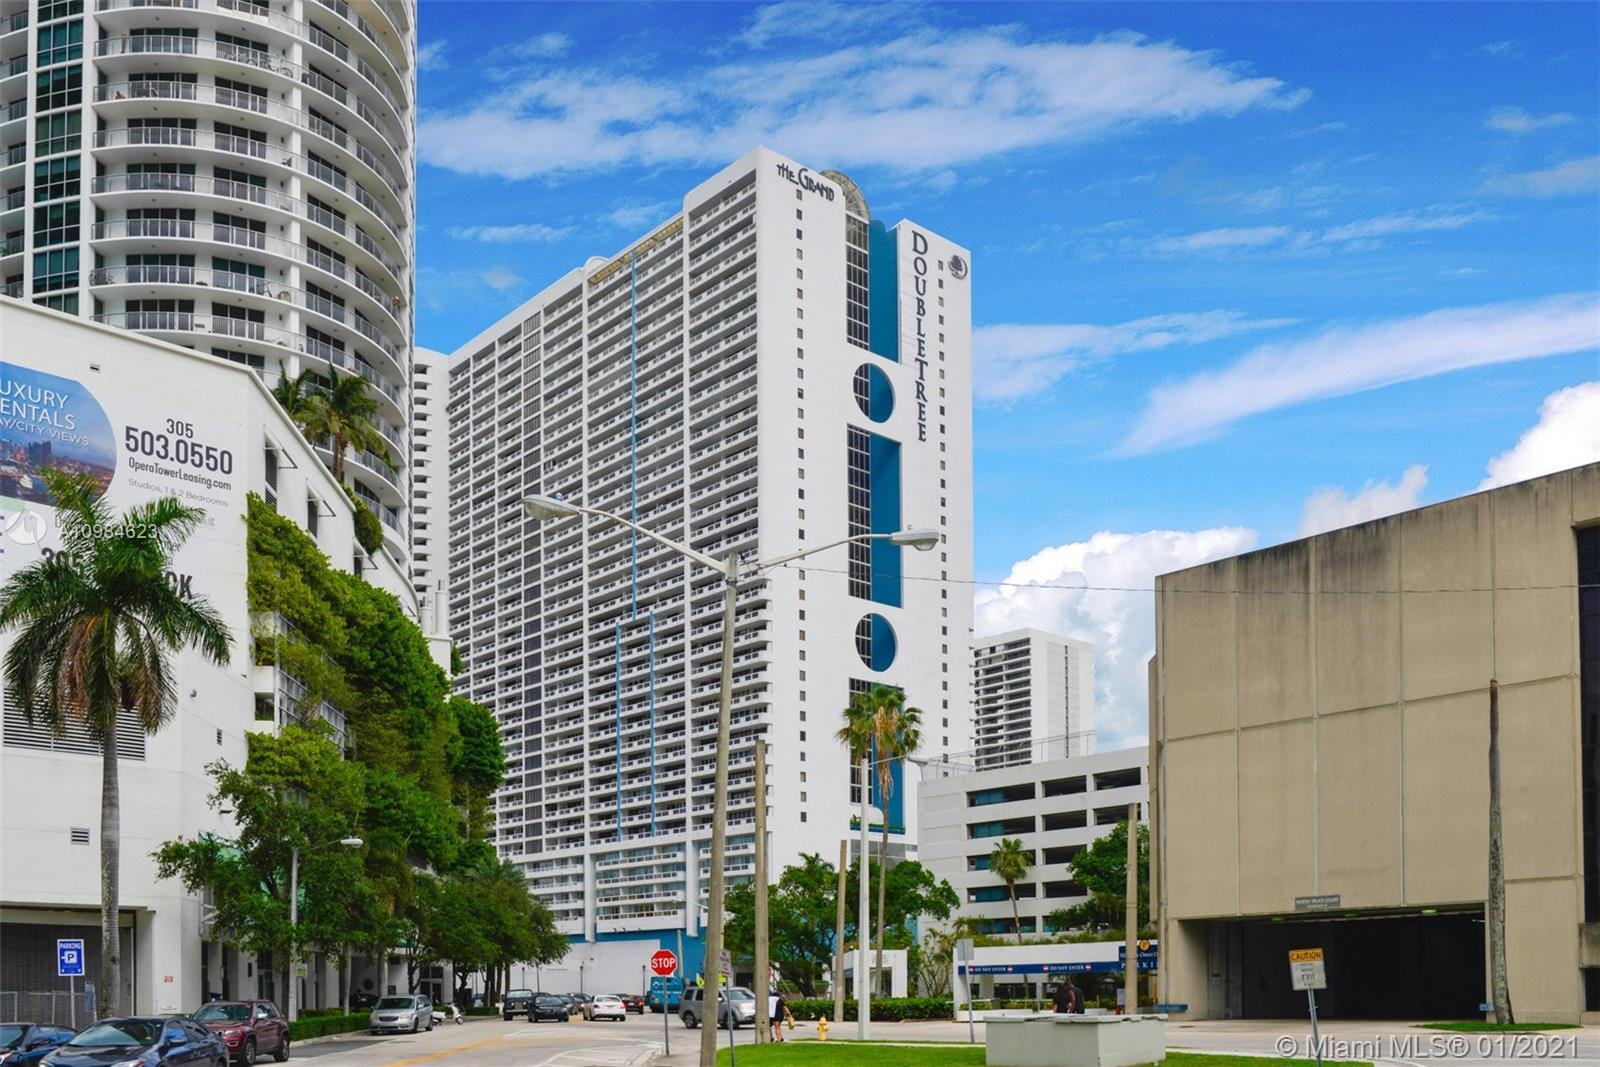 APPROVED SHORTSALE - Amazing opportunity at The Grand Condominium. Excellent unit for owner occupant